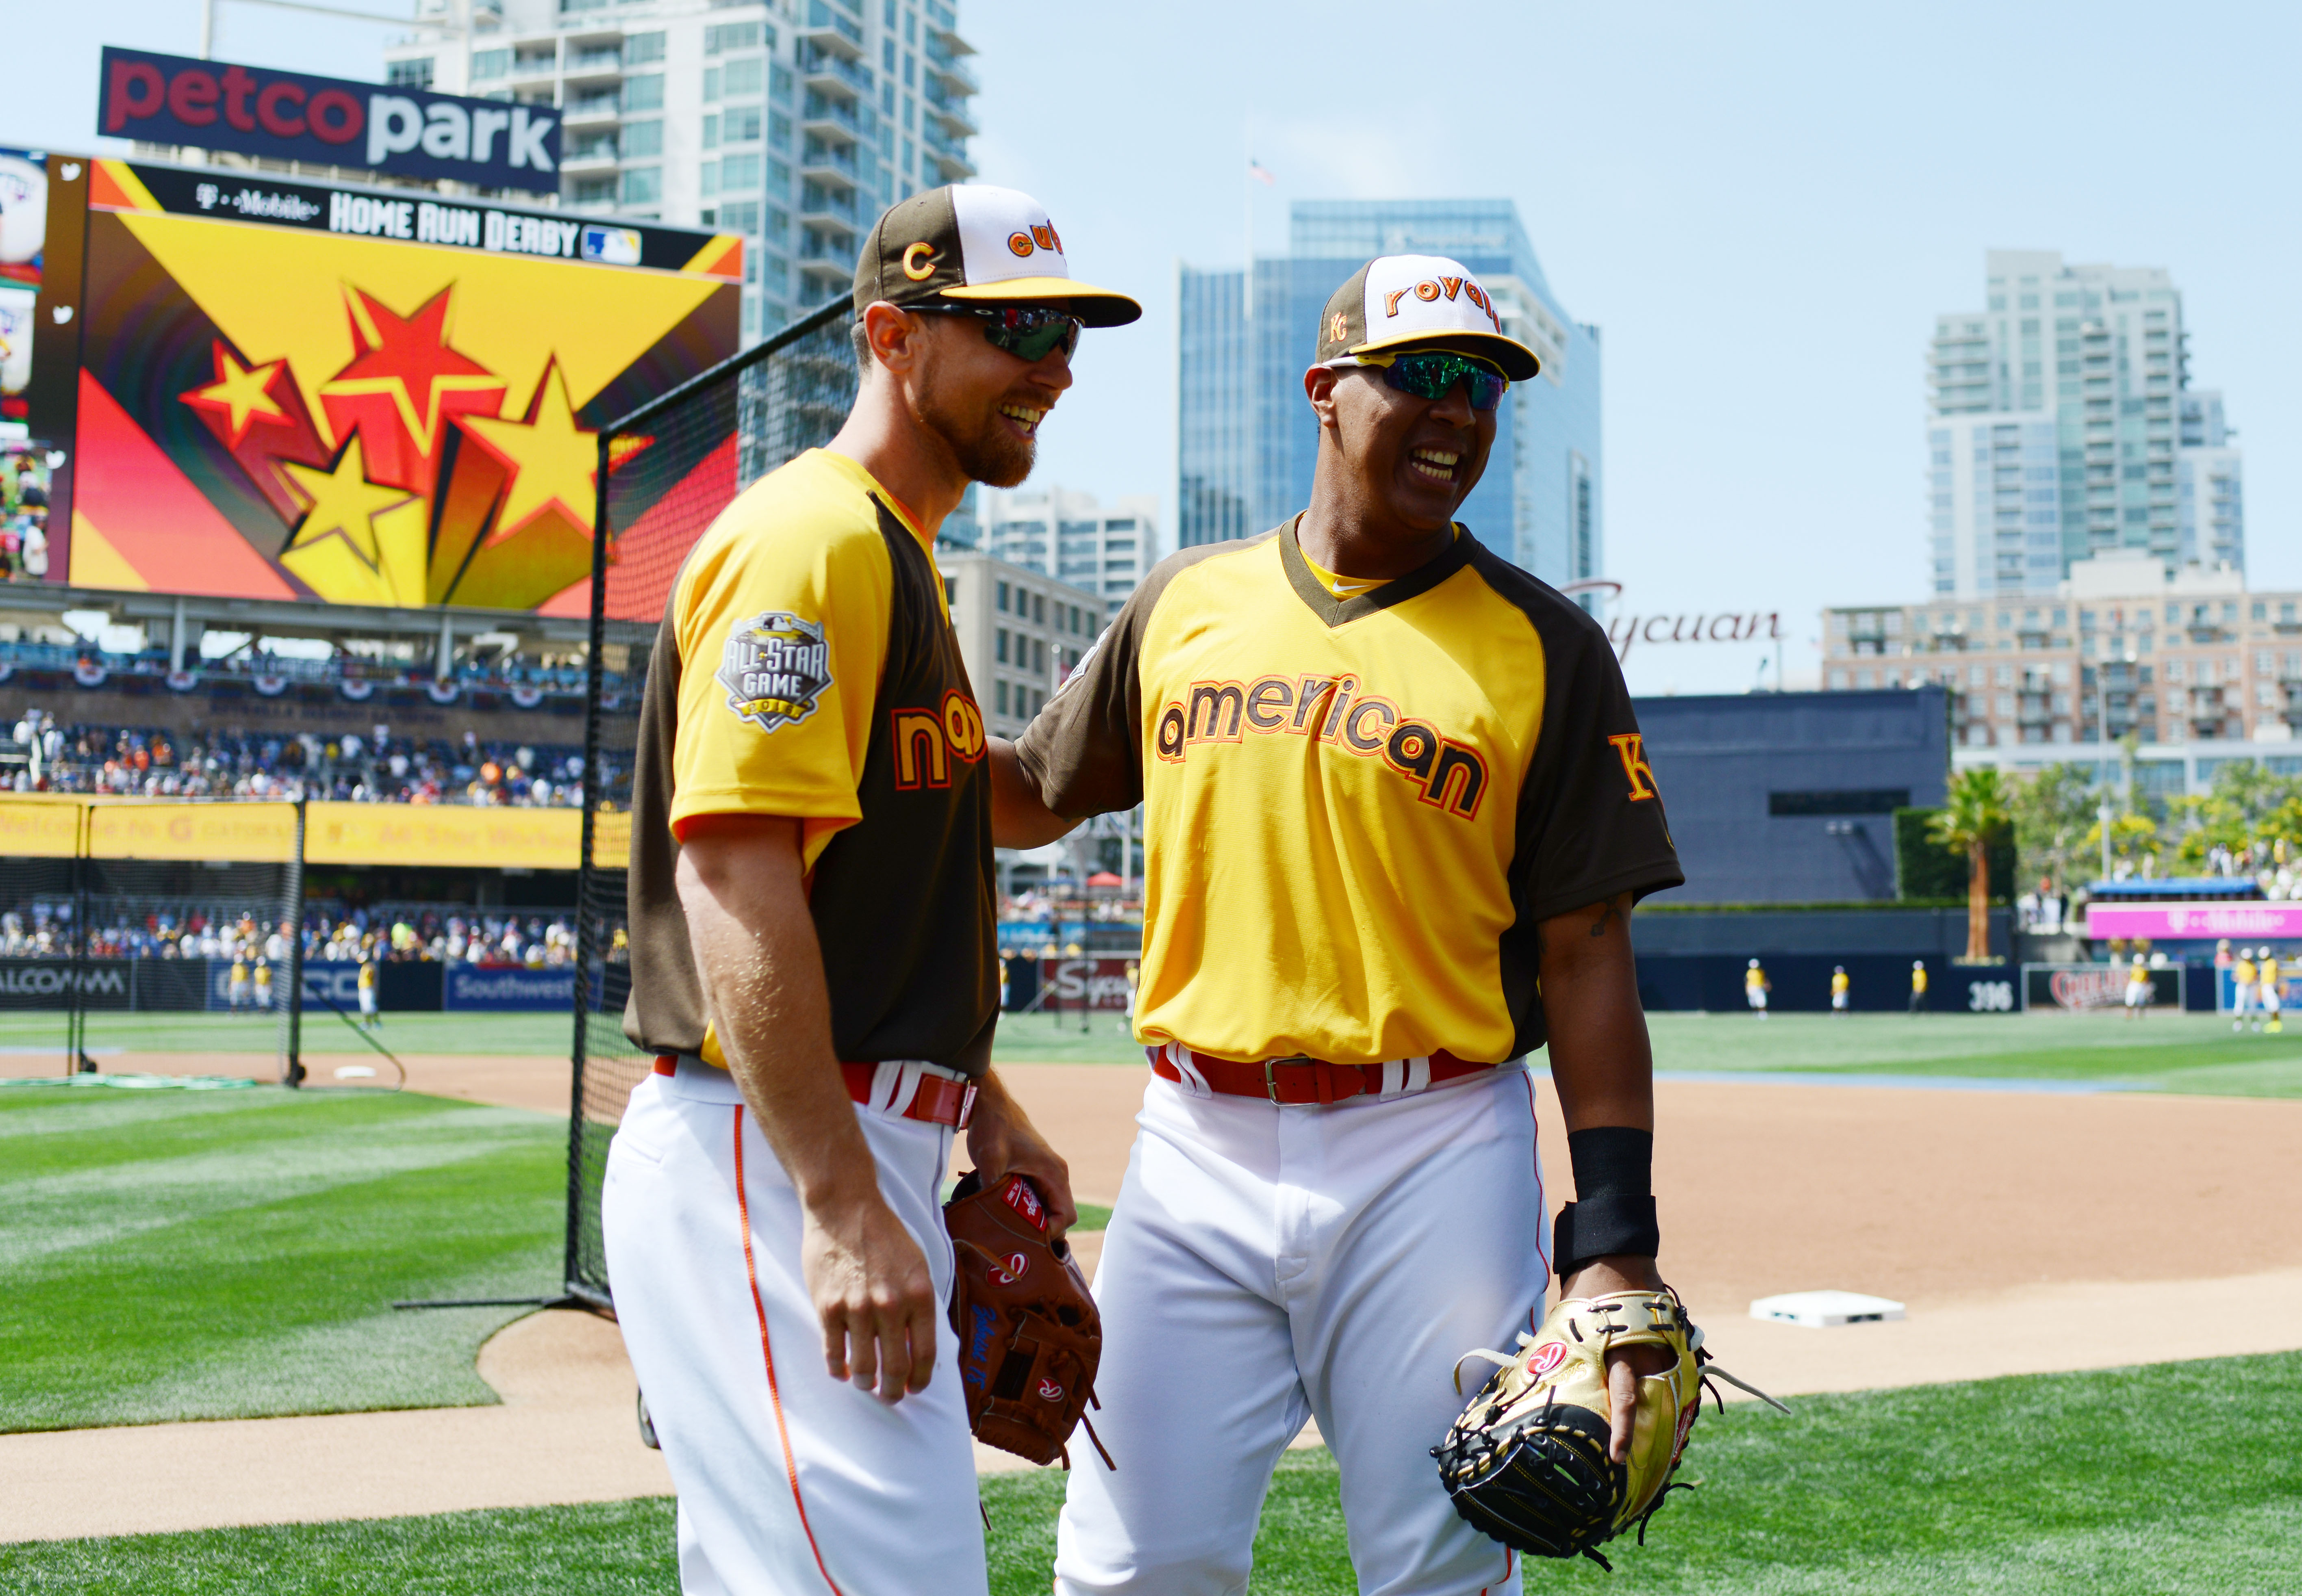 MLB: All Star Game-Workout Day